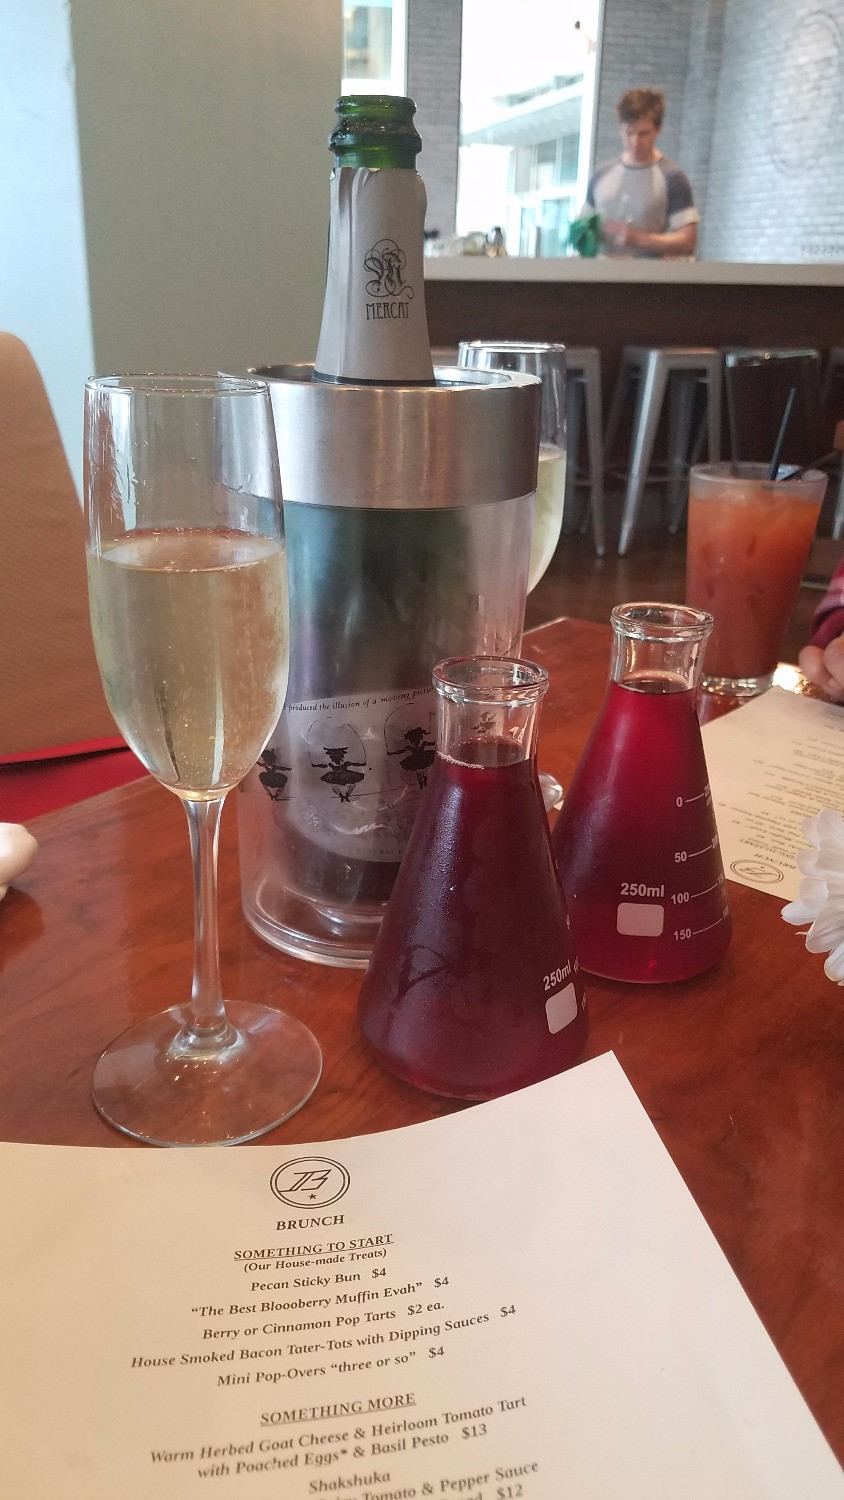 The Sunday Brunch Bottle Service is a nice touch!